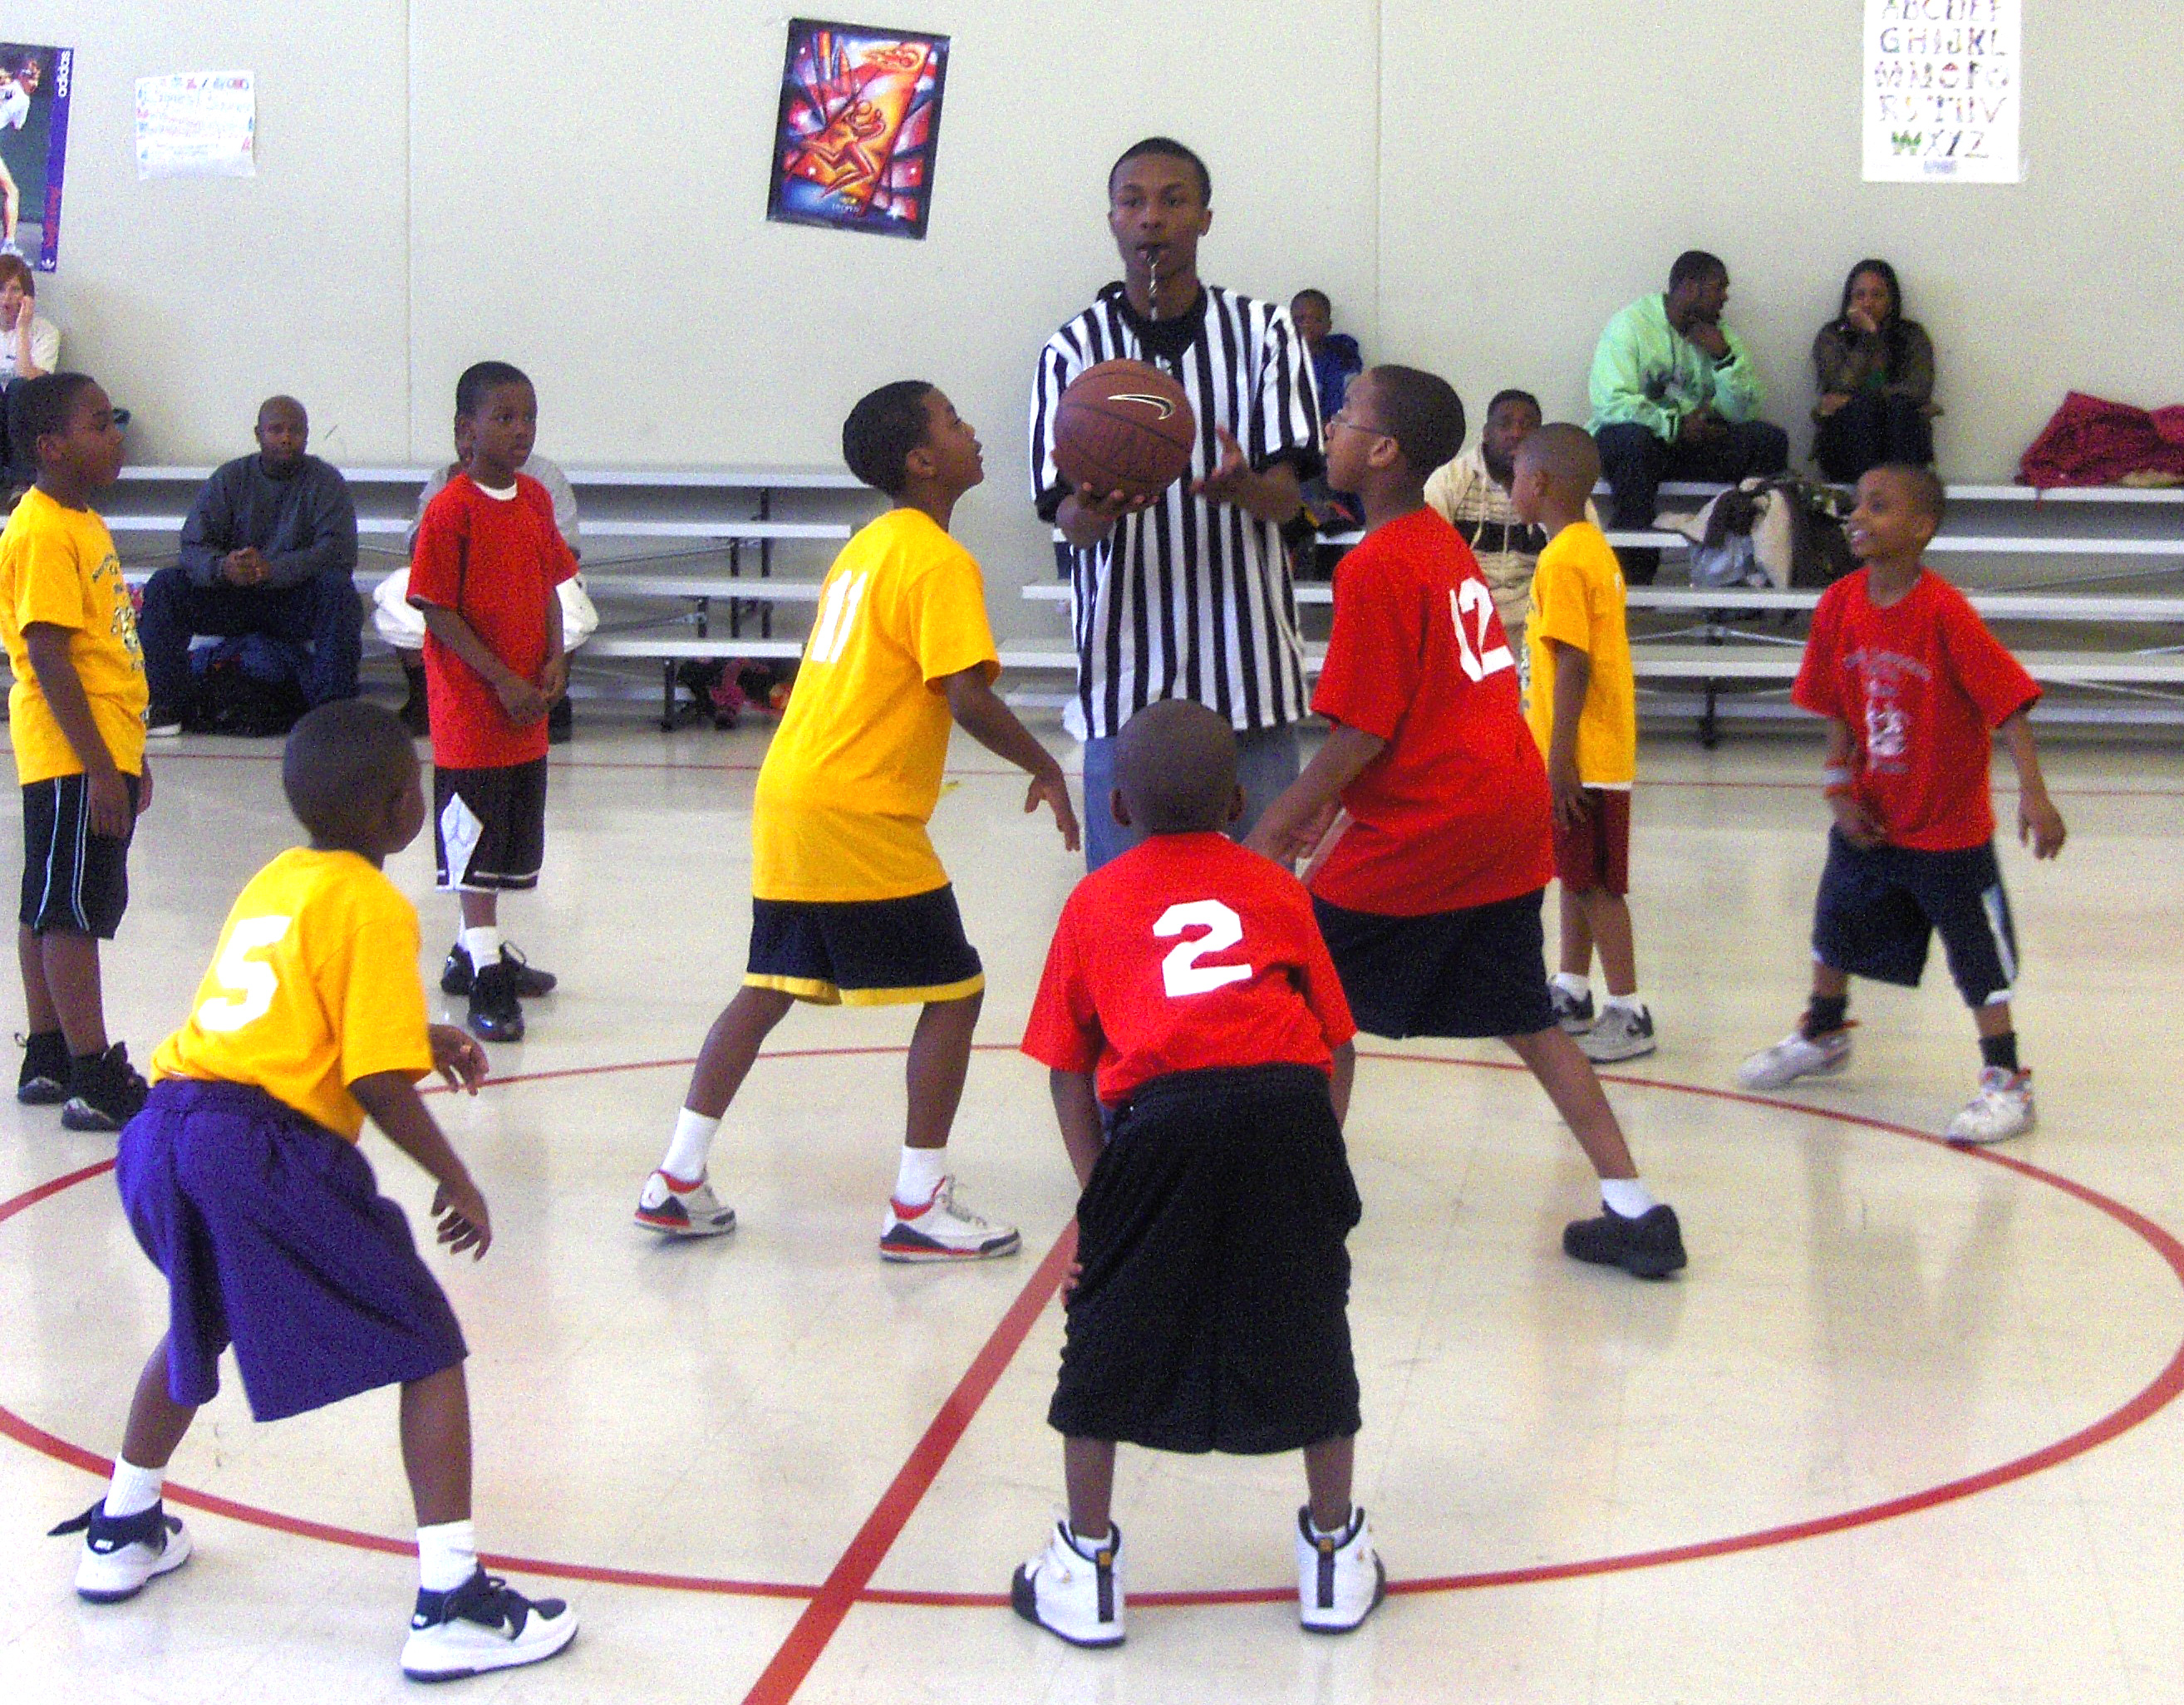 For 9 Years, the Kelly Hall Y Has Turned Teens into Basketball Officials